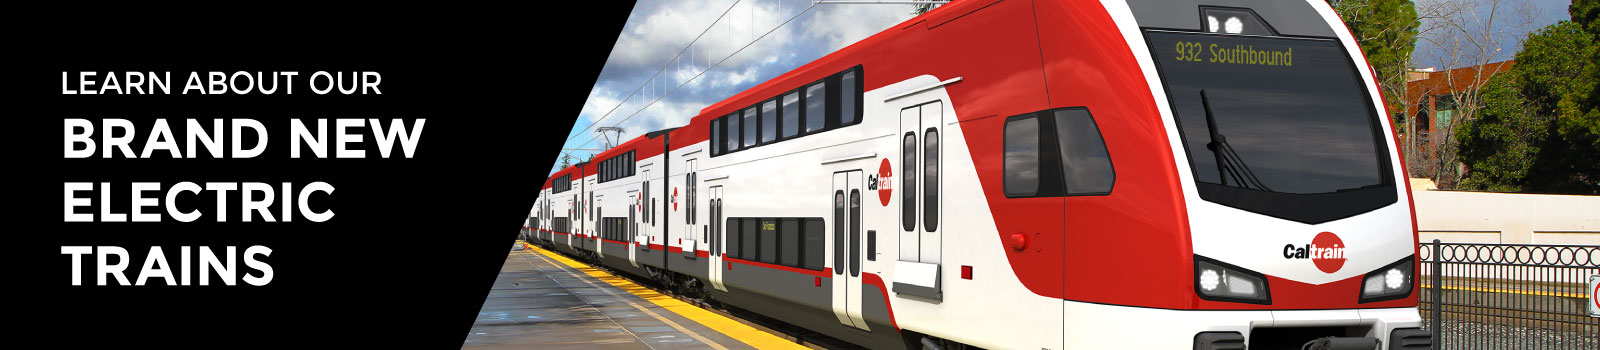 Learn more about Caltrain new trains